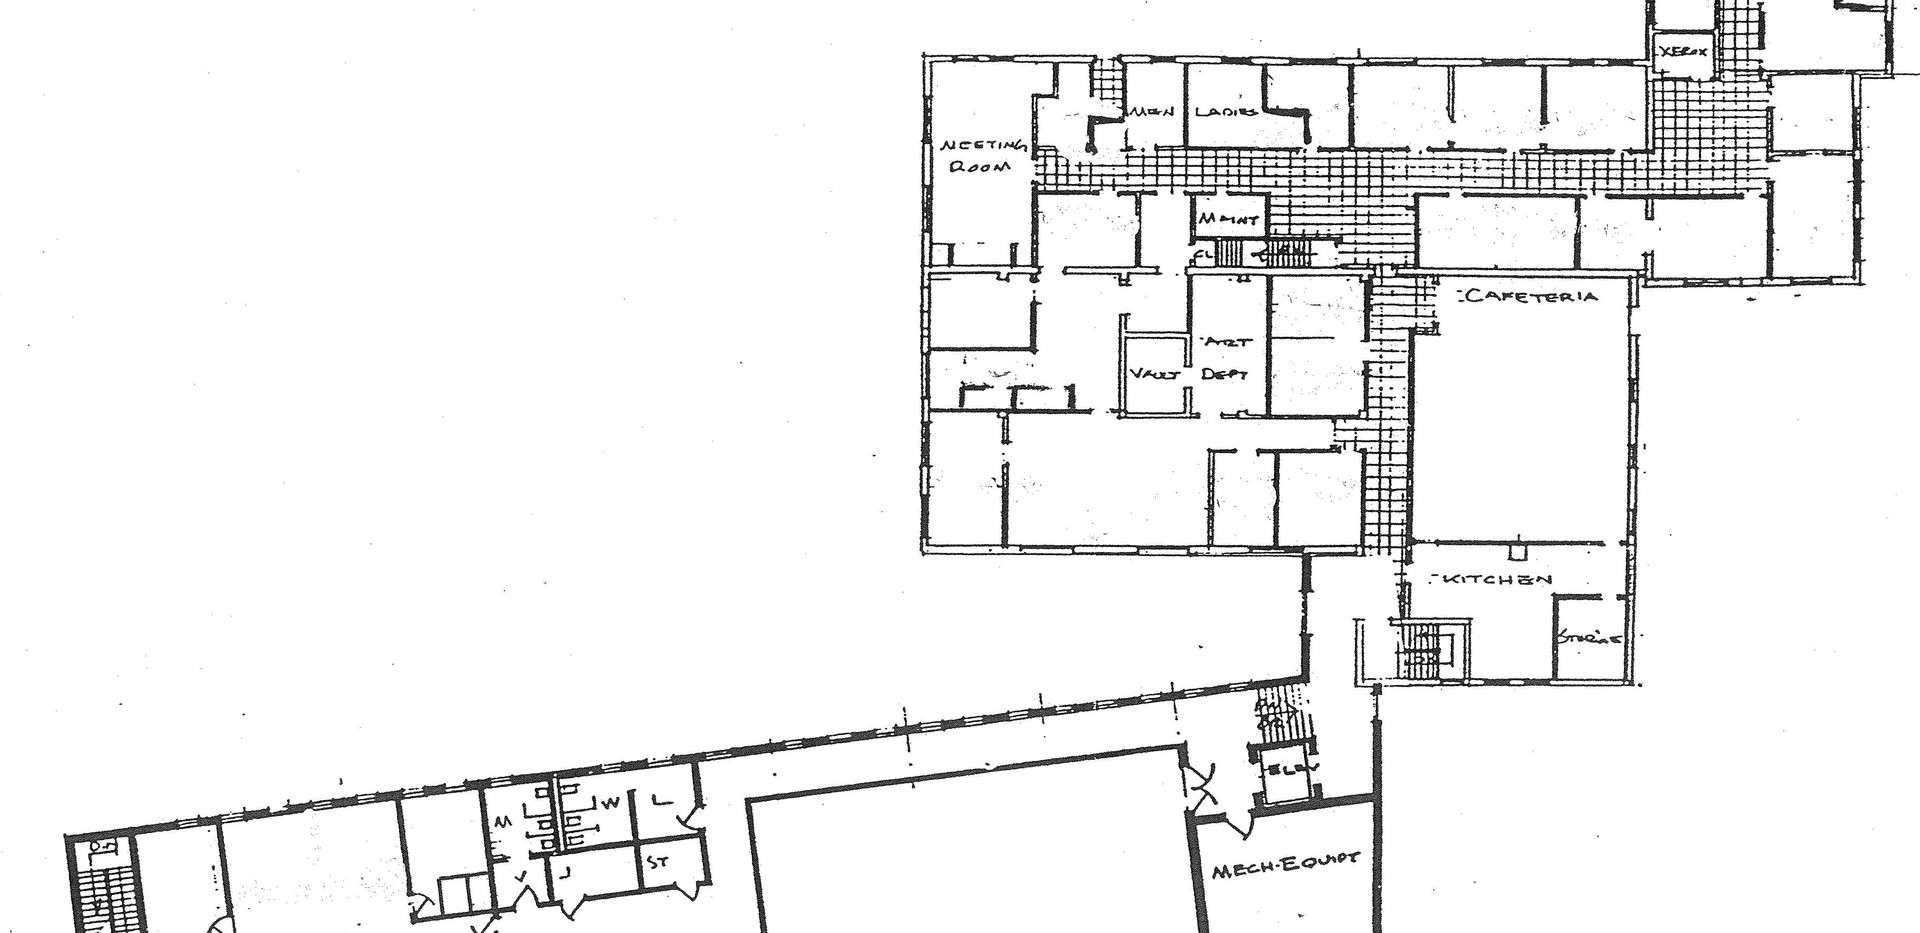 535 Route 22 - Second Floor Plan